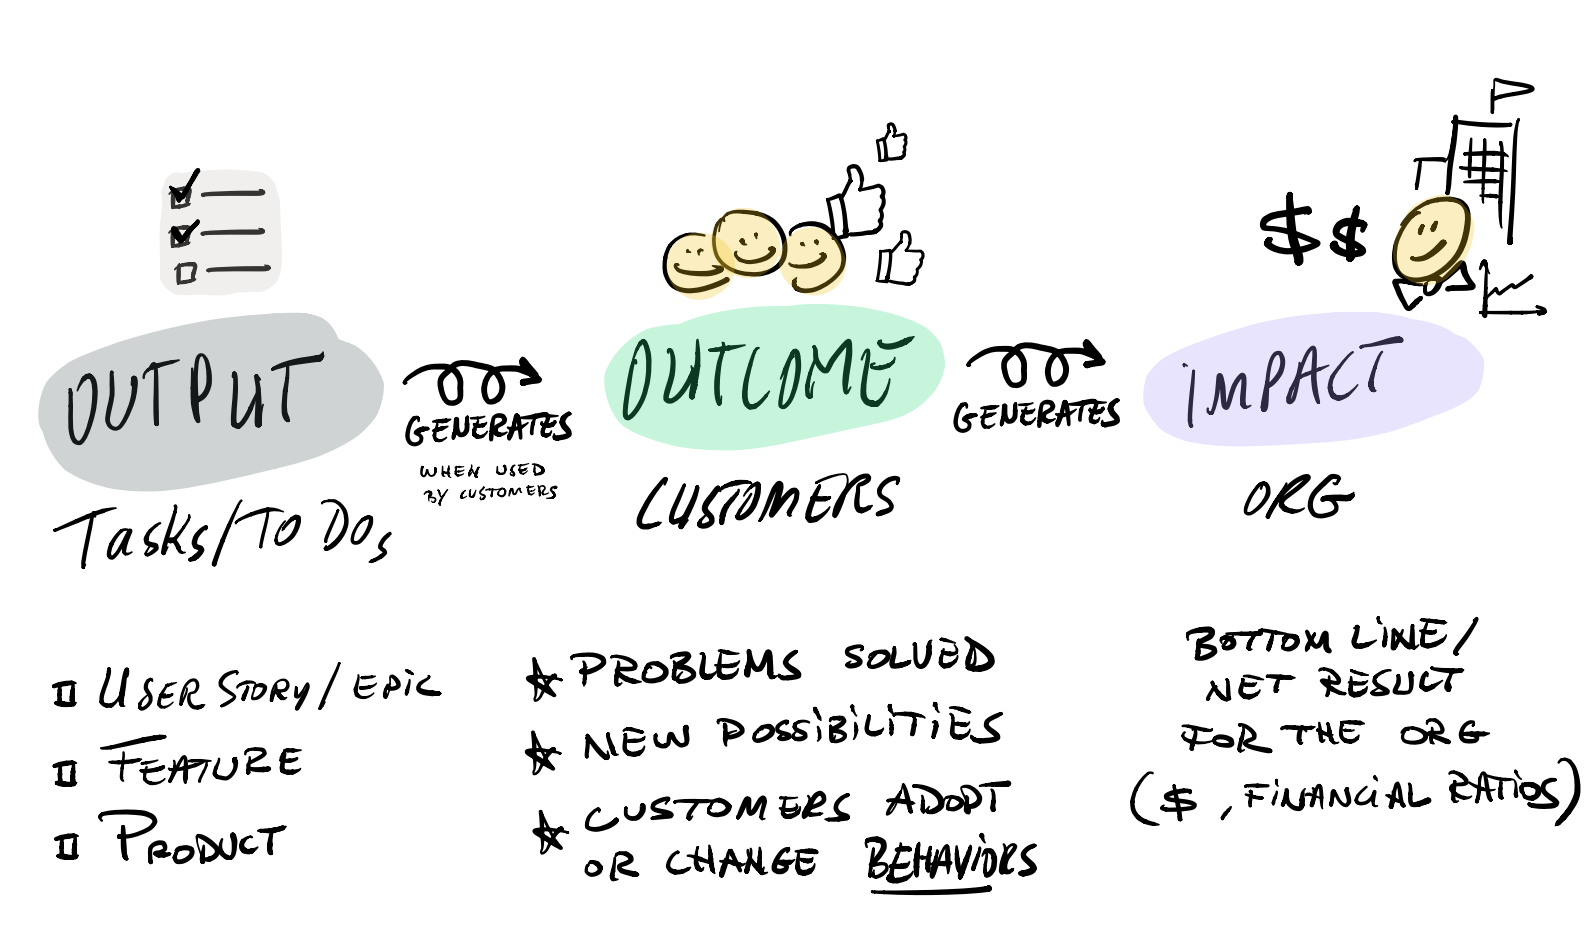 Outcomes as Enablers of Business Impact